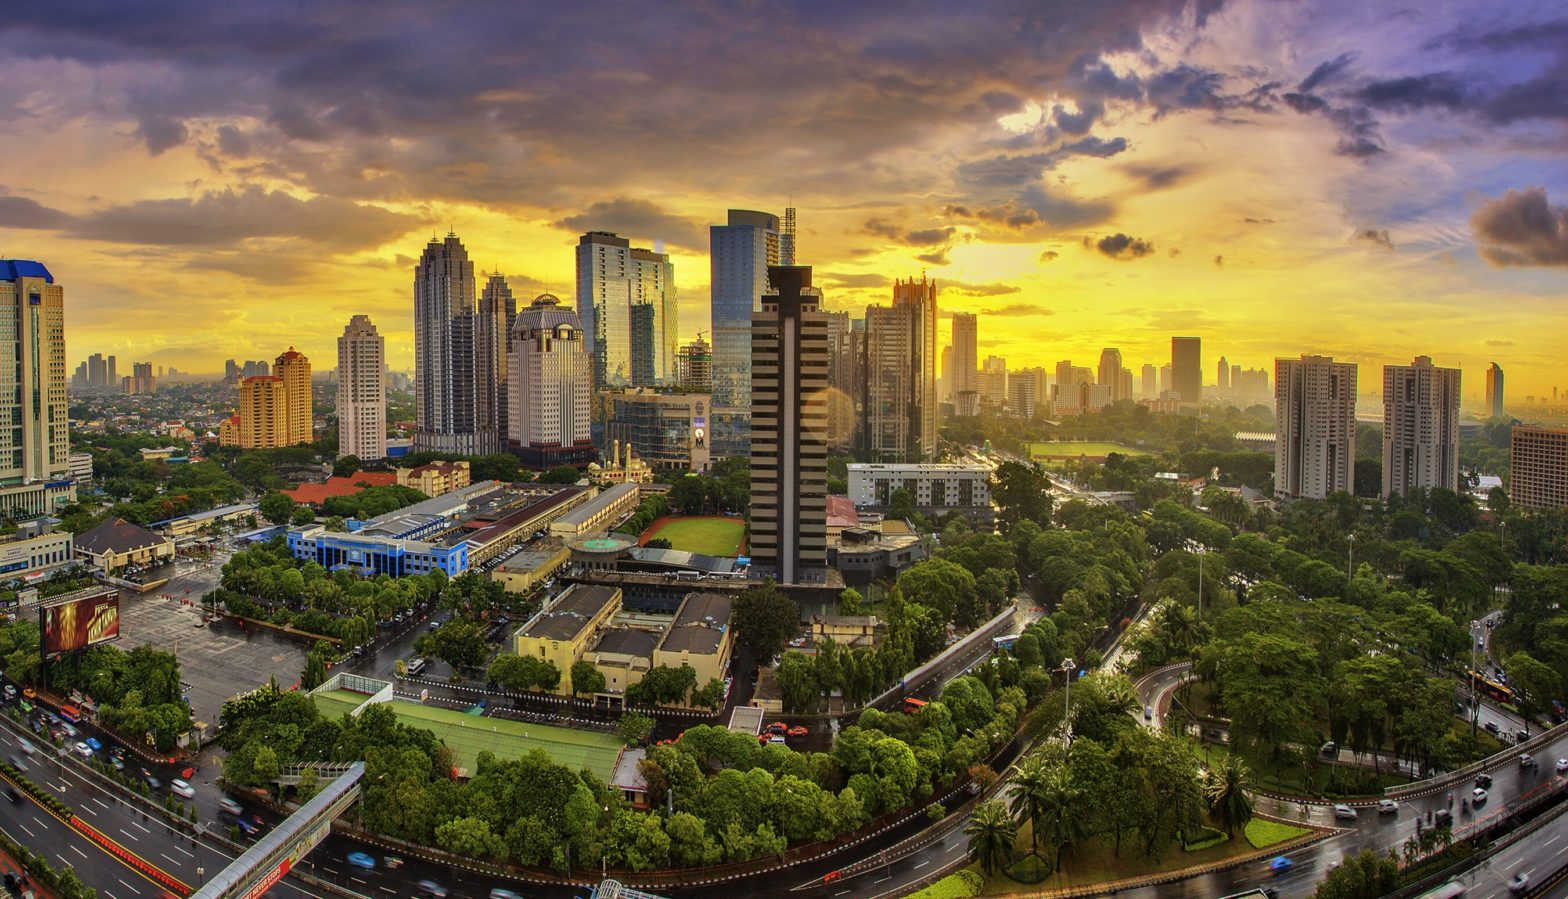 Jakarta, capital city of Indonesia, is the center of economics, culture and politics of Indonesia